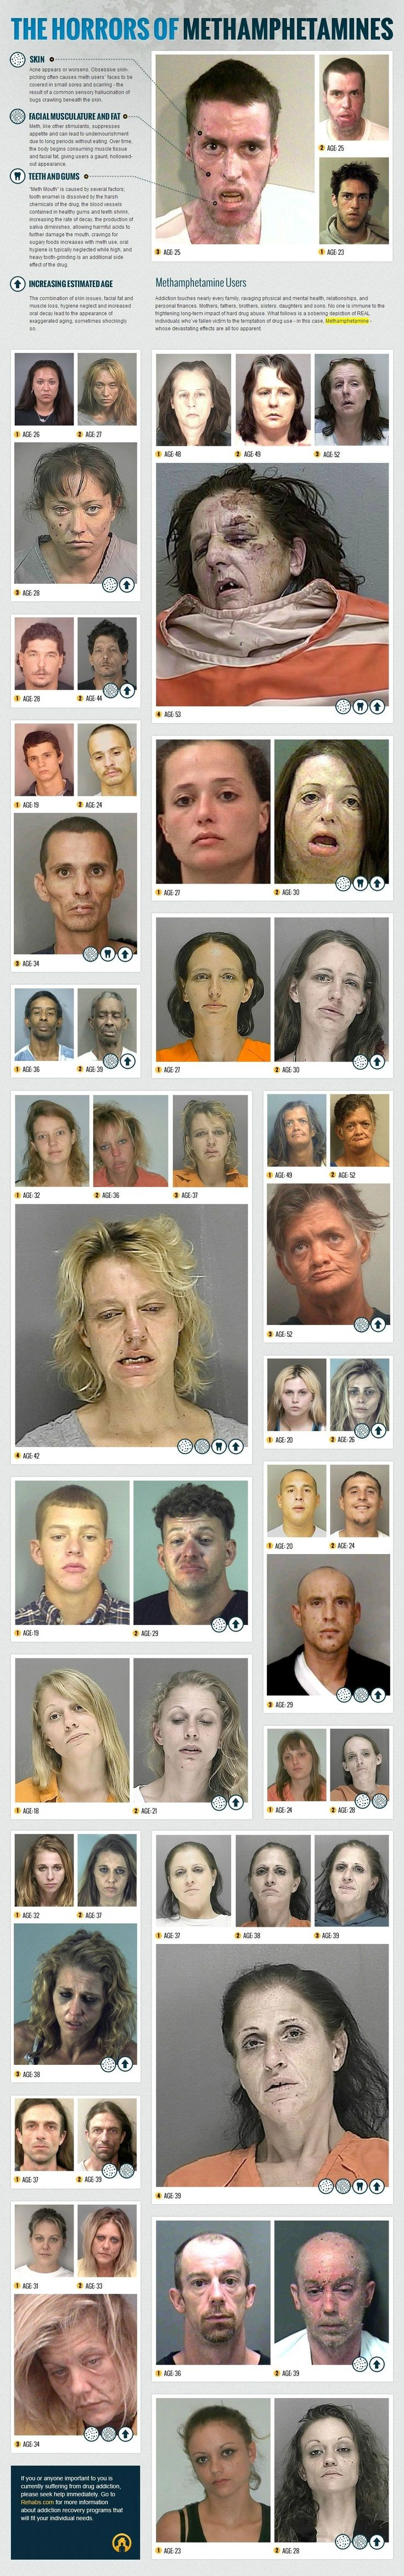 Before & After Meth   pretty scary-will show to my girls one day to show them drugs suck!